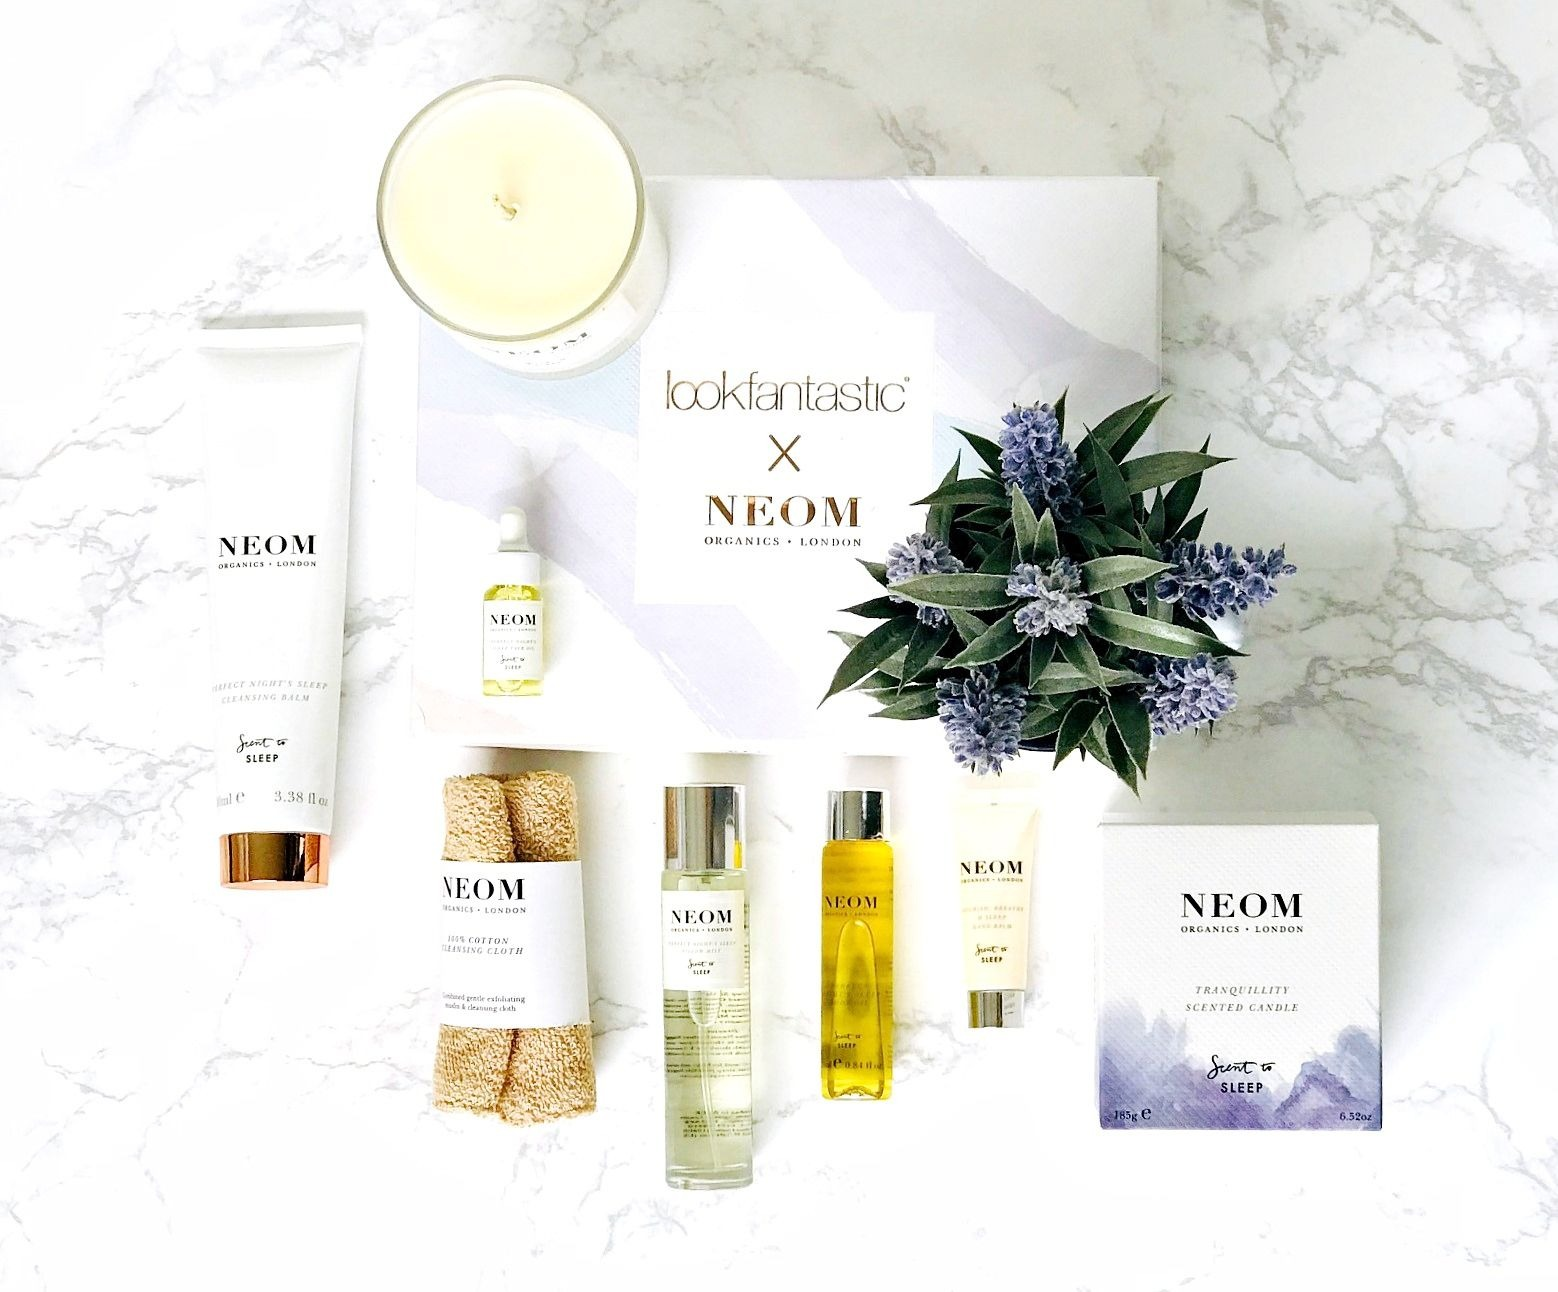 Lookfantastic x NEOM Organics Limited Edition Beauty Box